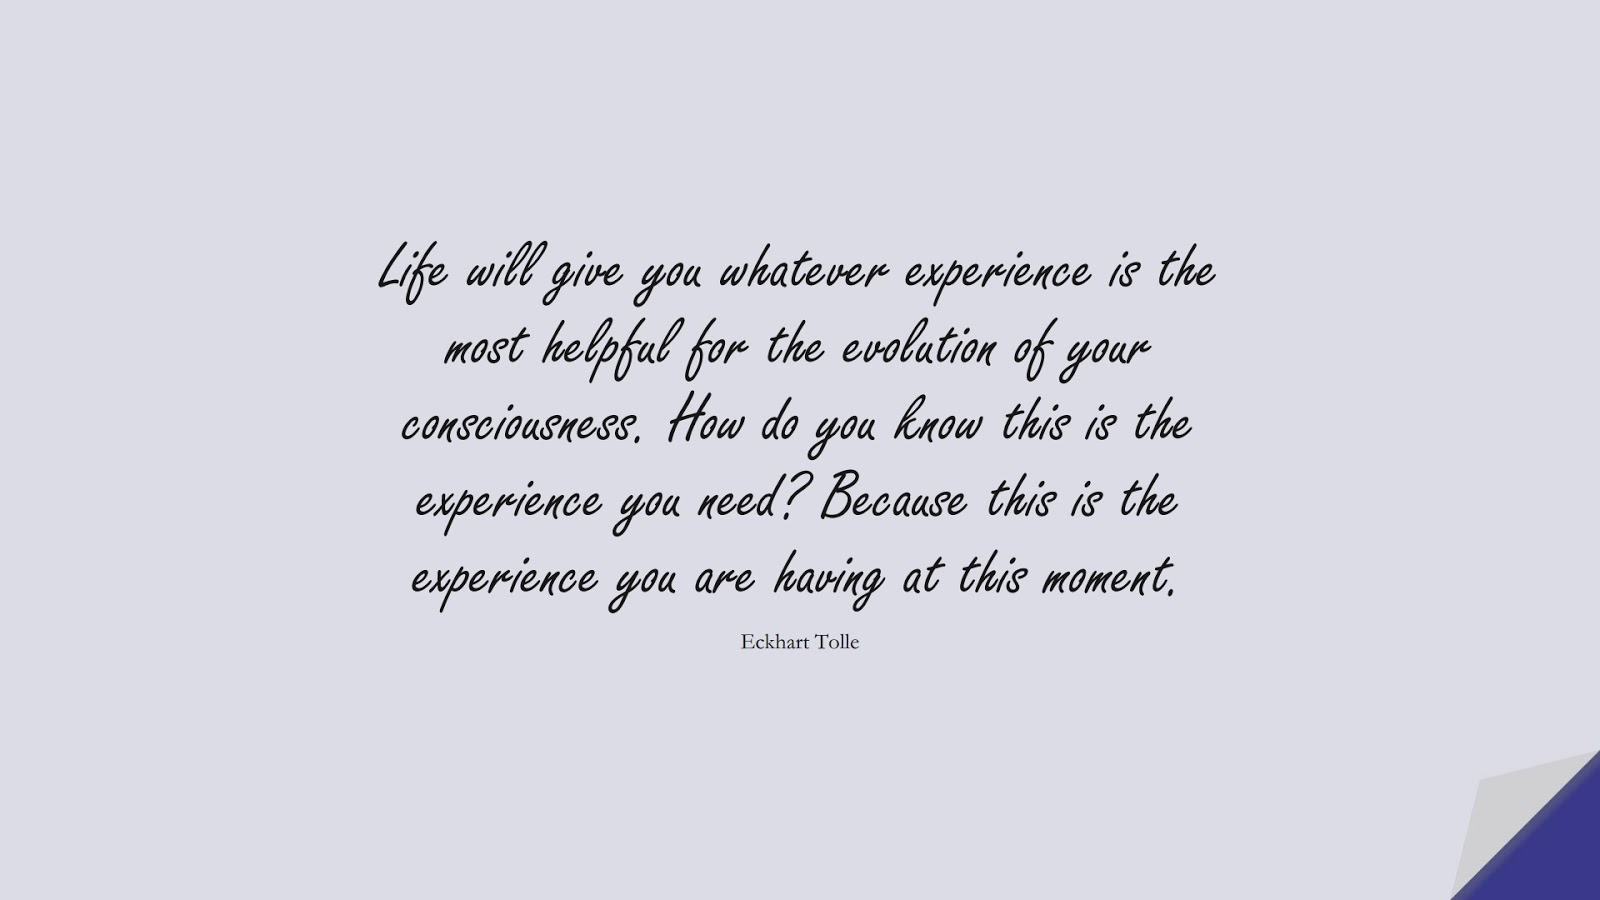 Life will give you whatever experience is the most helpful for the evolution of your consciousness. How do you know this is the experience you need? Because this is the experience you are having at this moment. (Eckhart Tolle);  #DepressionQuotes